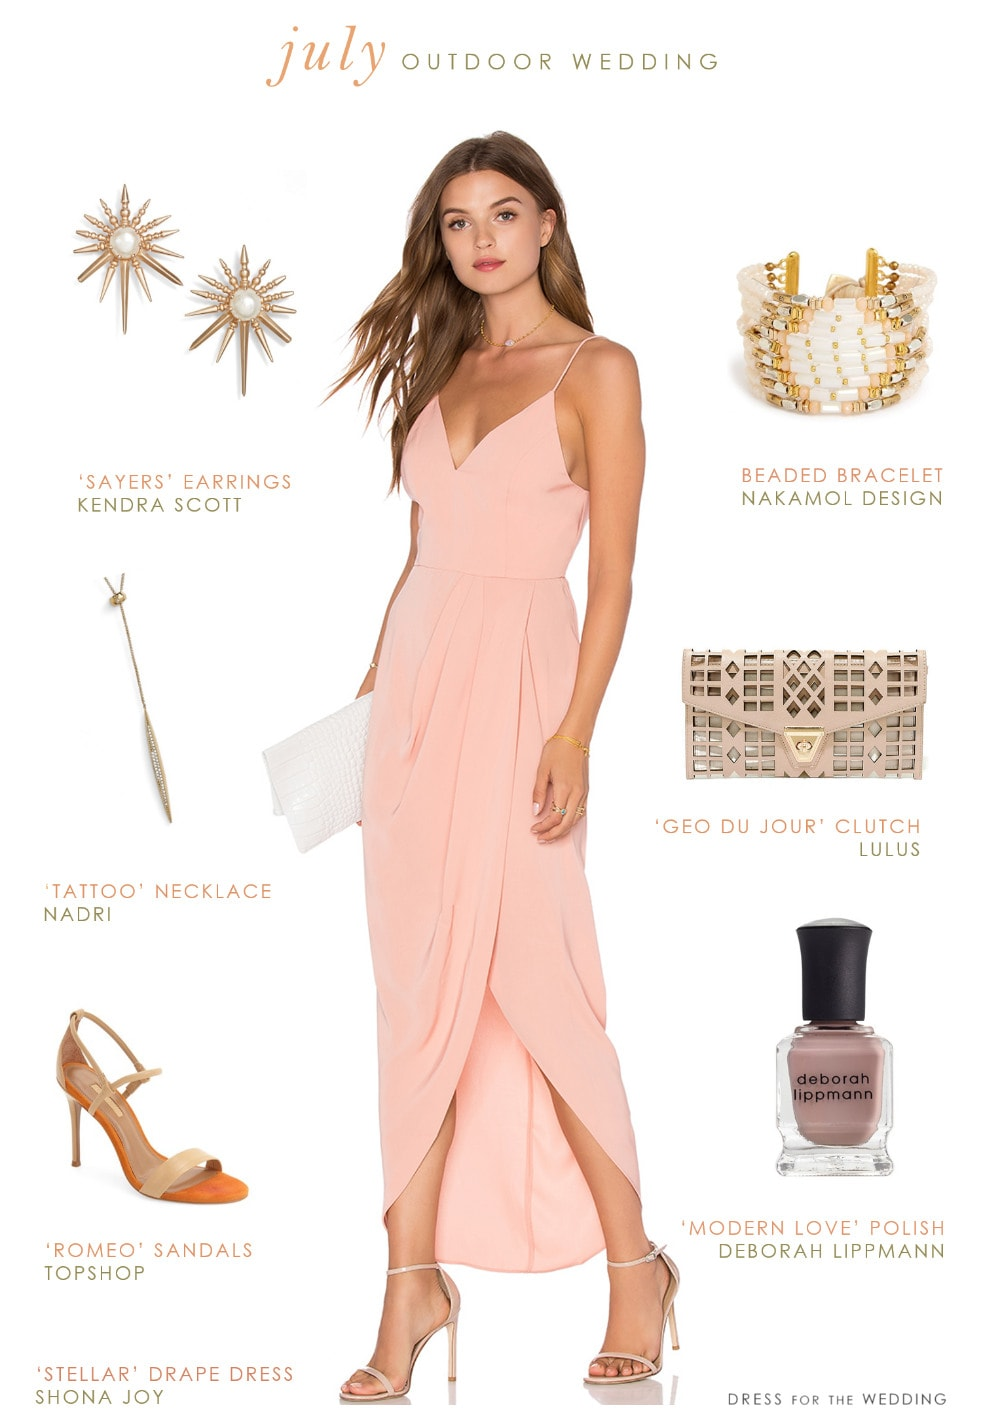 0cb01d030c50 What to Wear to an Outdoor July Wedding